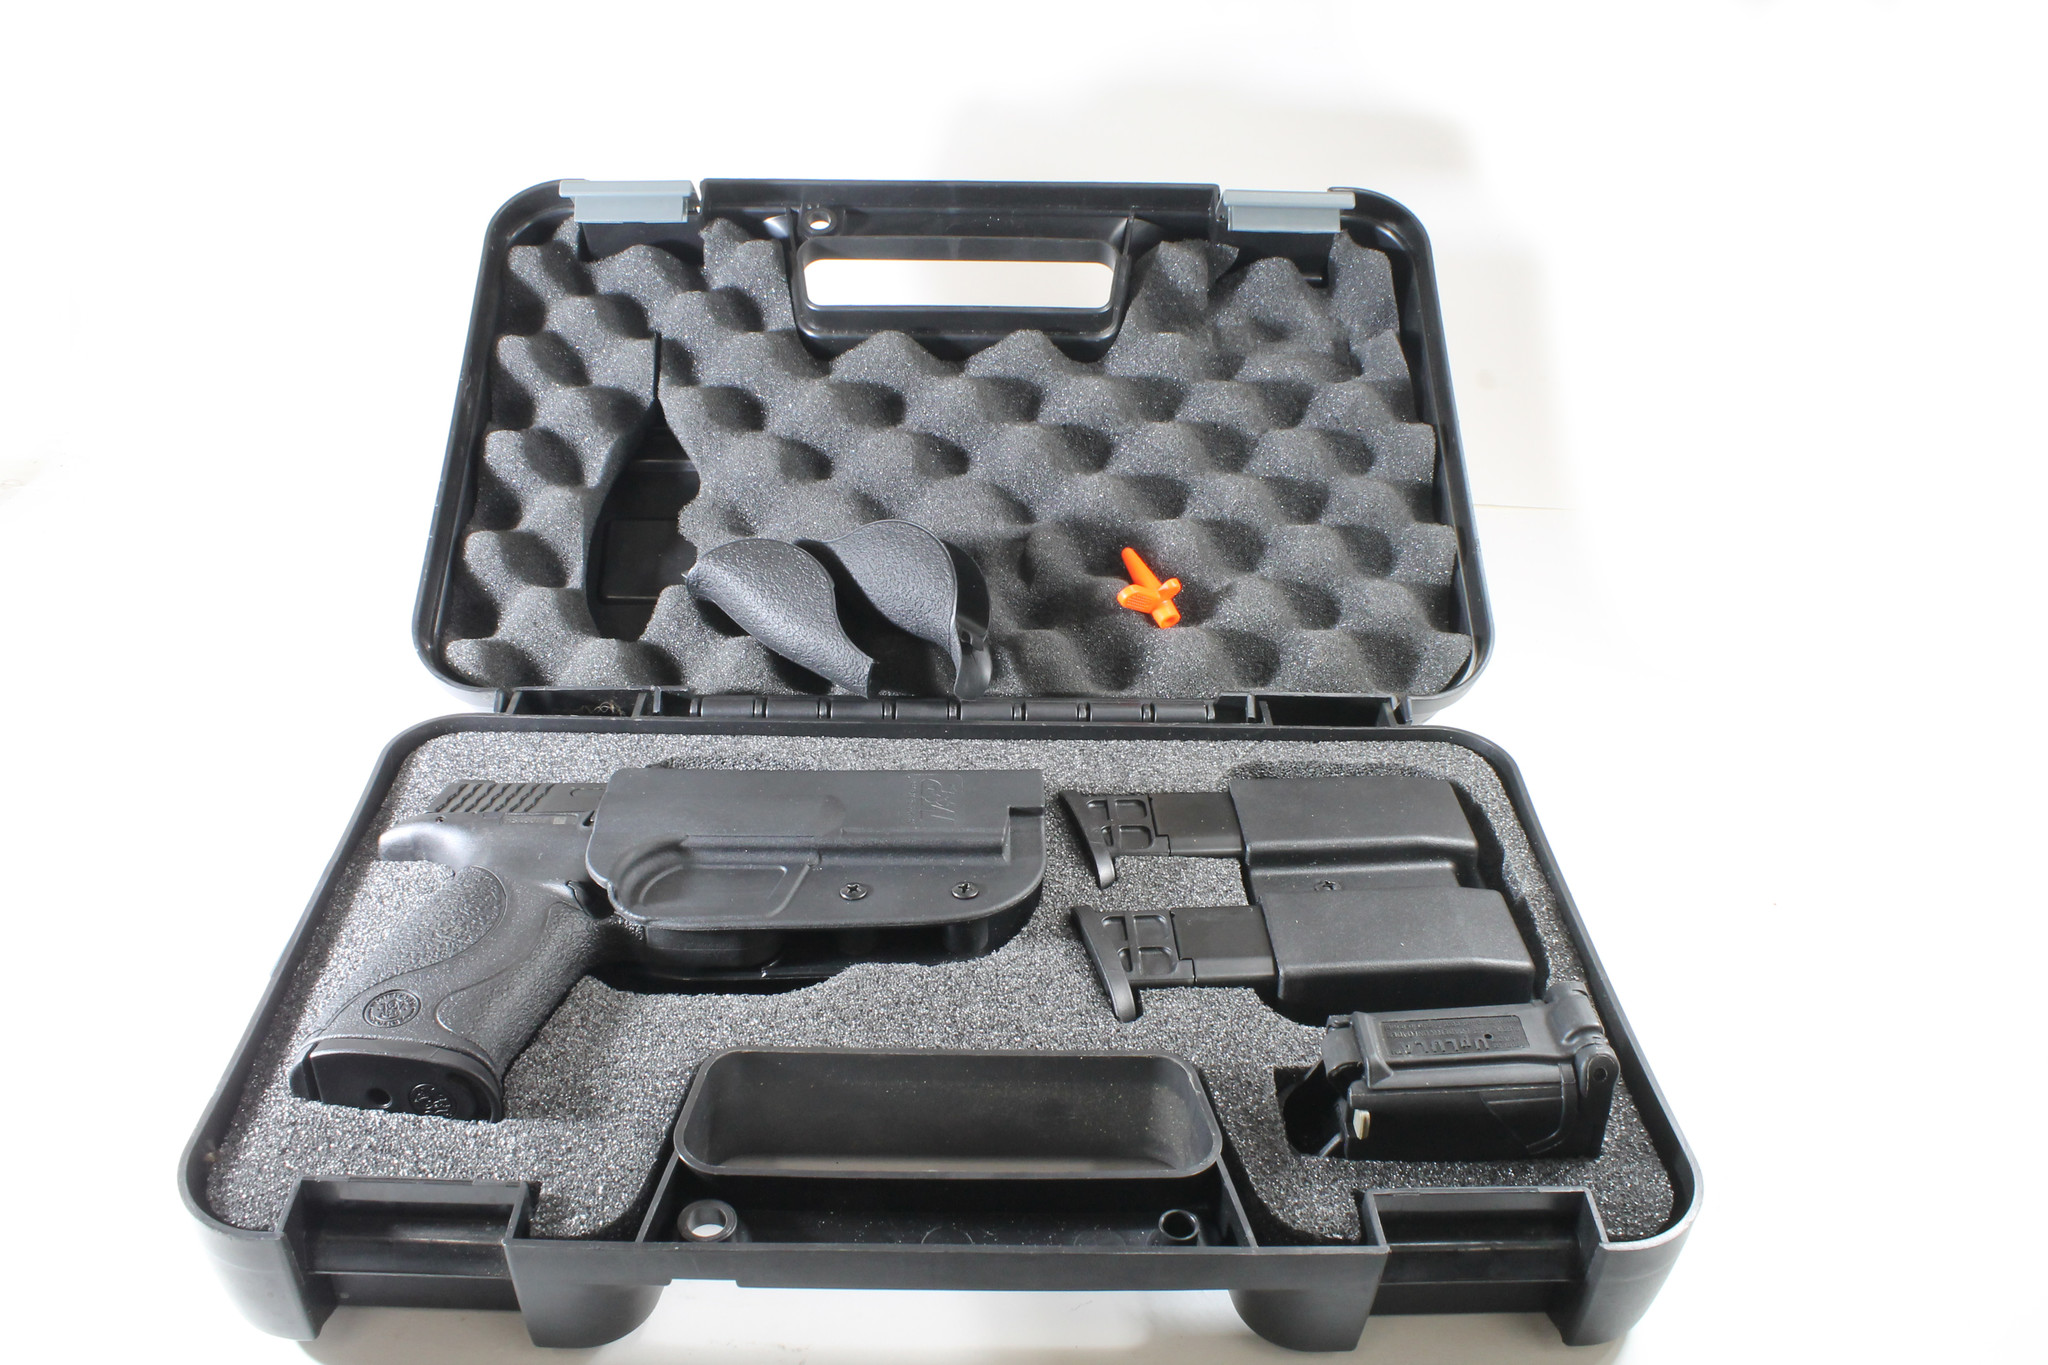 USED UHG-6733 SMITH & WESSON M&p 9MM WITH RANGE KIT